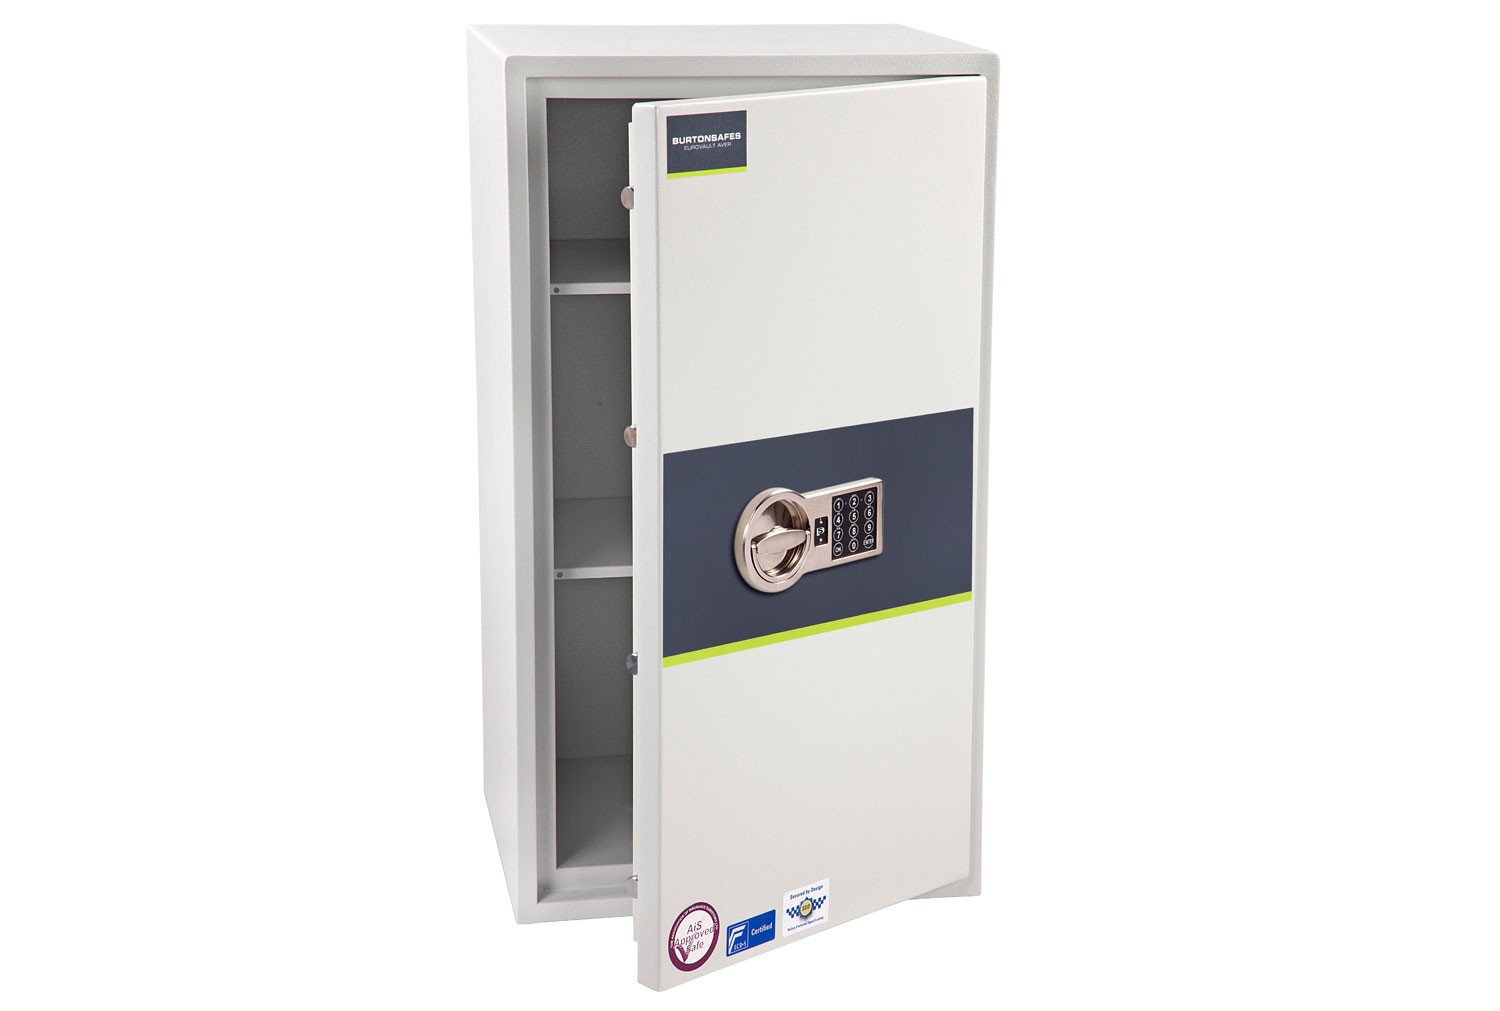 Burton Eurovault Aver S2 Size 5 Safe With Key Lock (77ltrs)